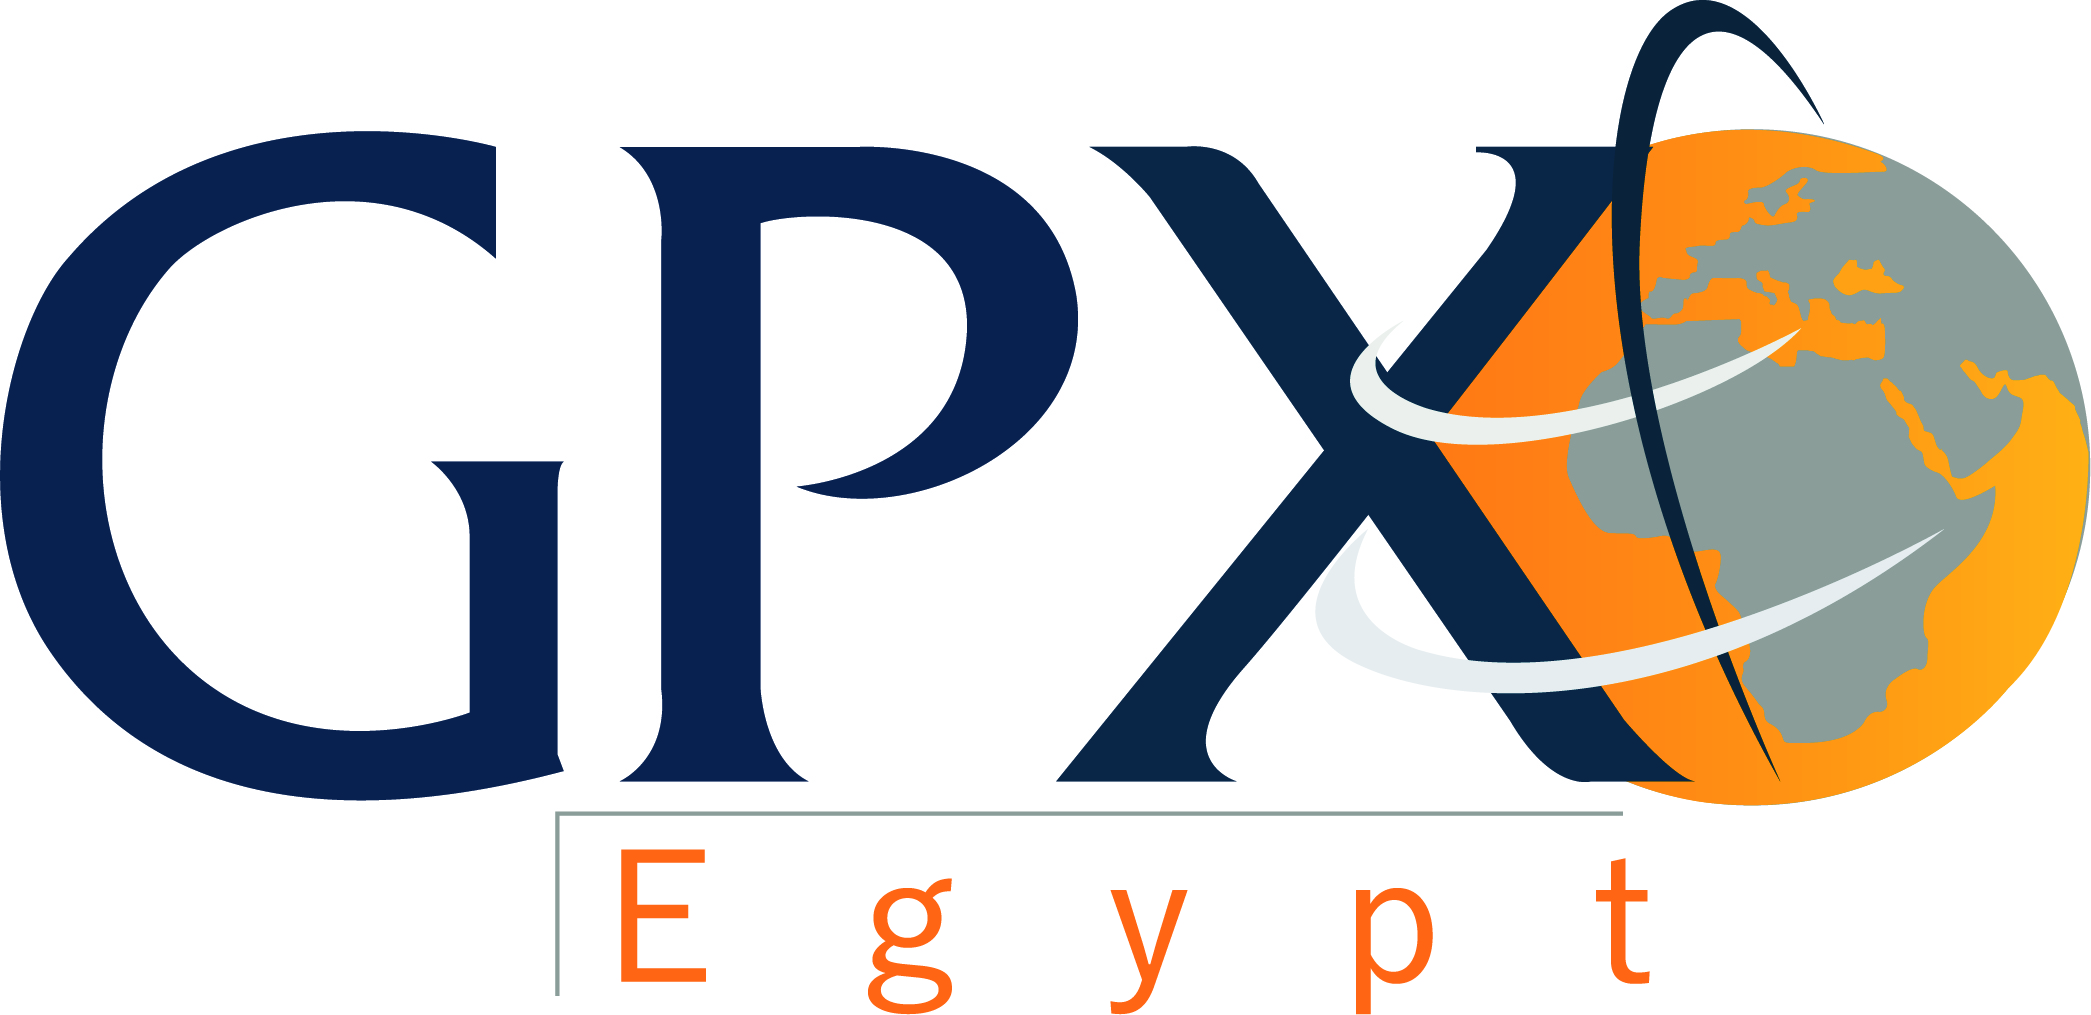 GPX Global Systems, Inc